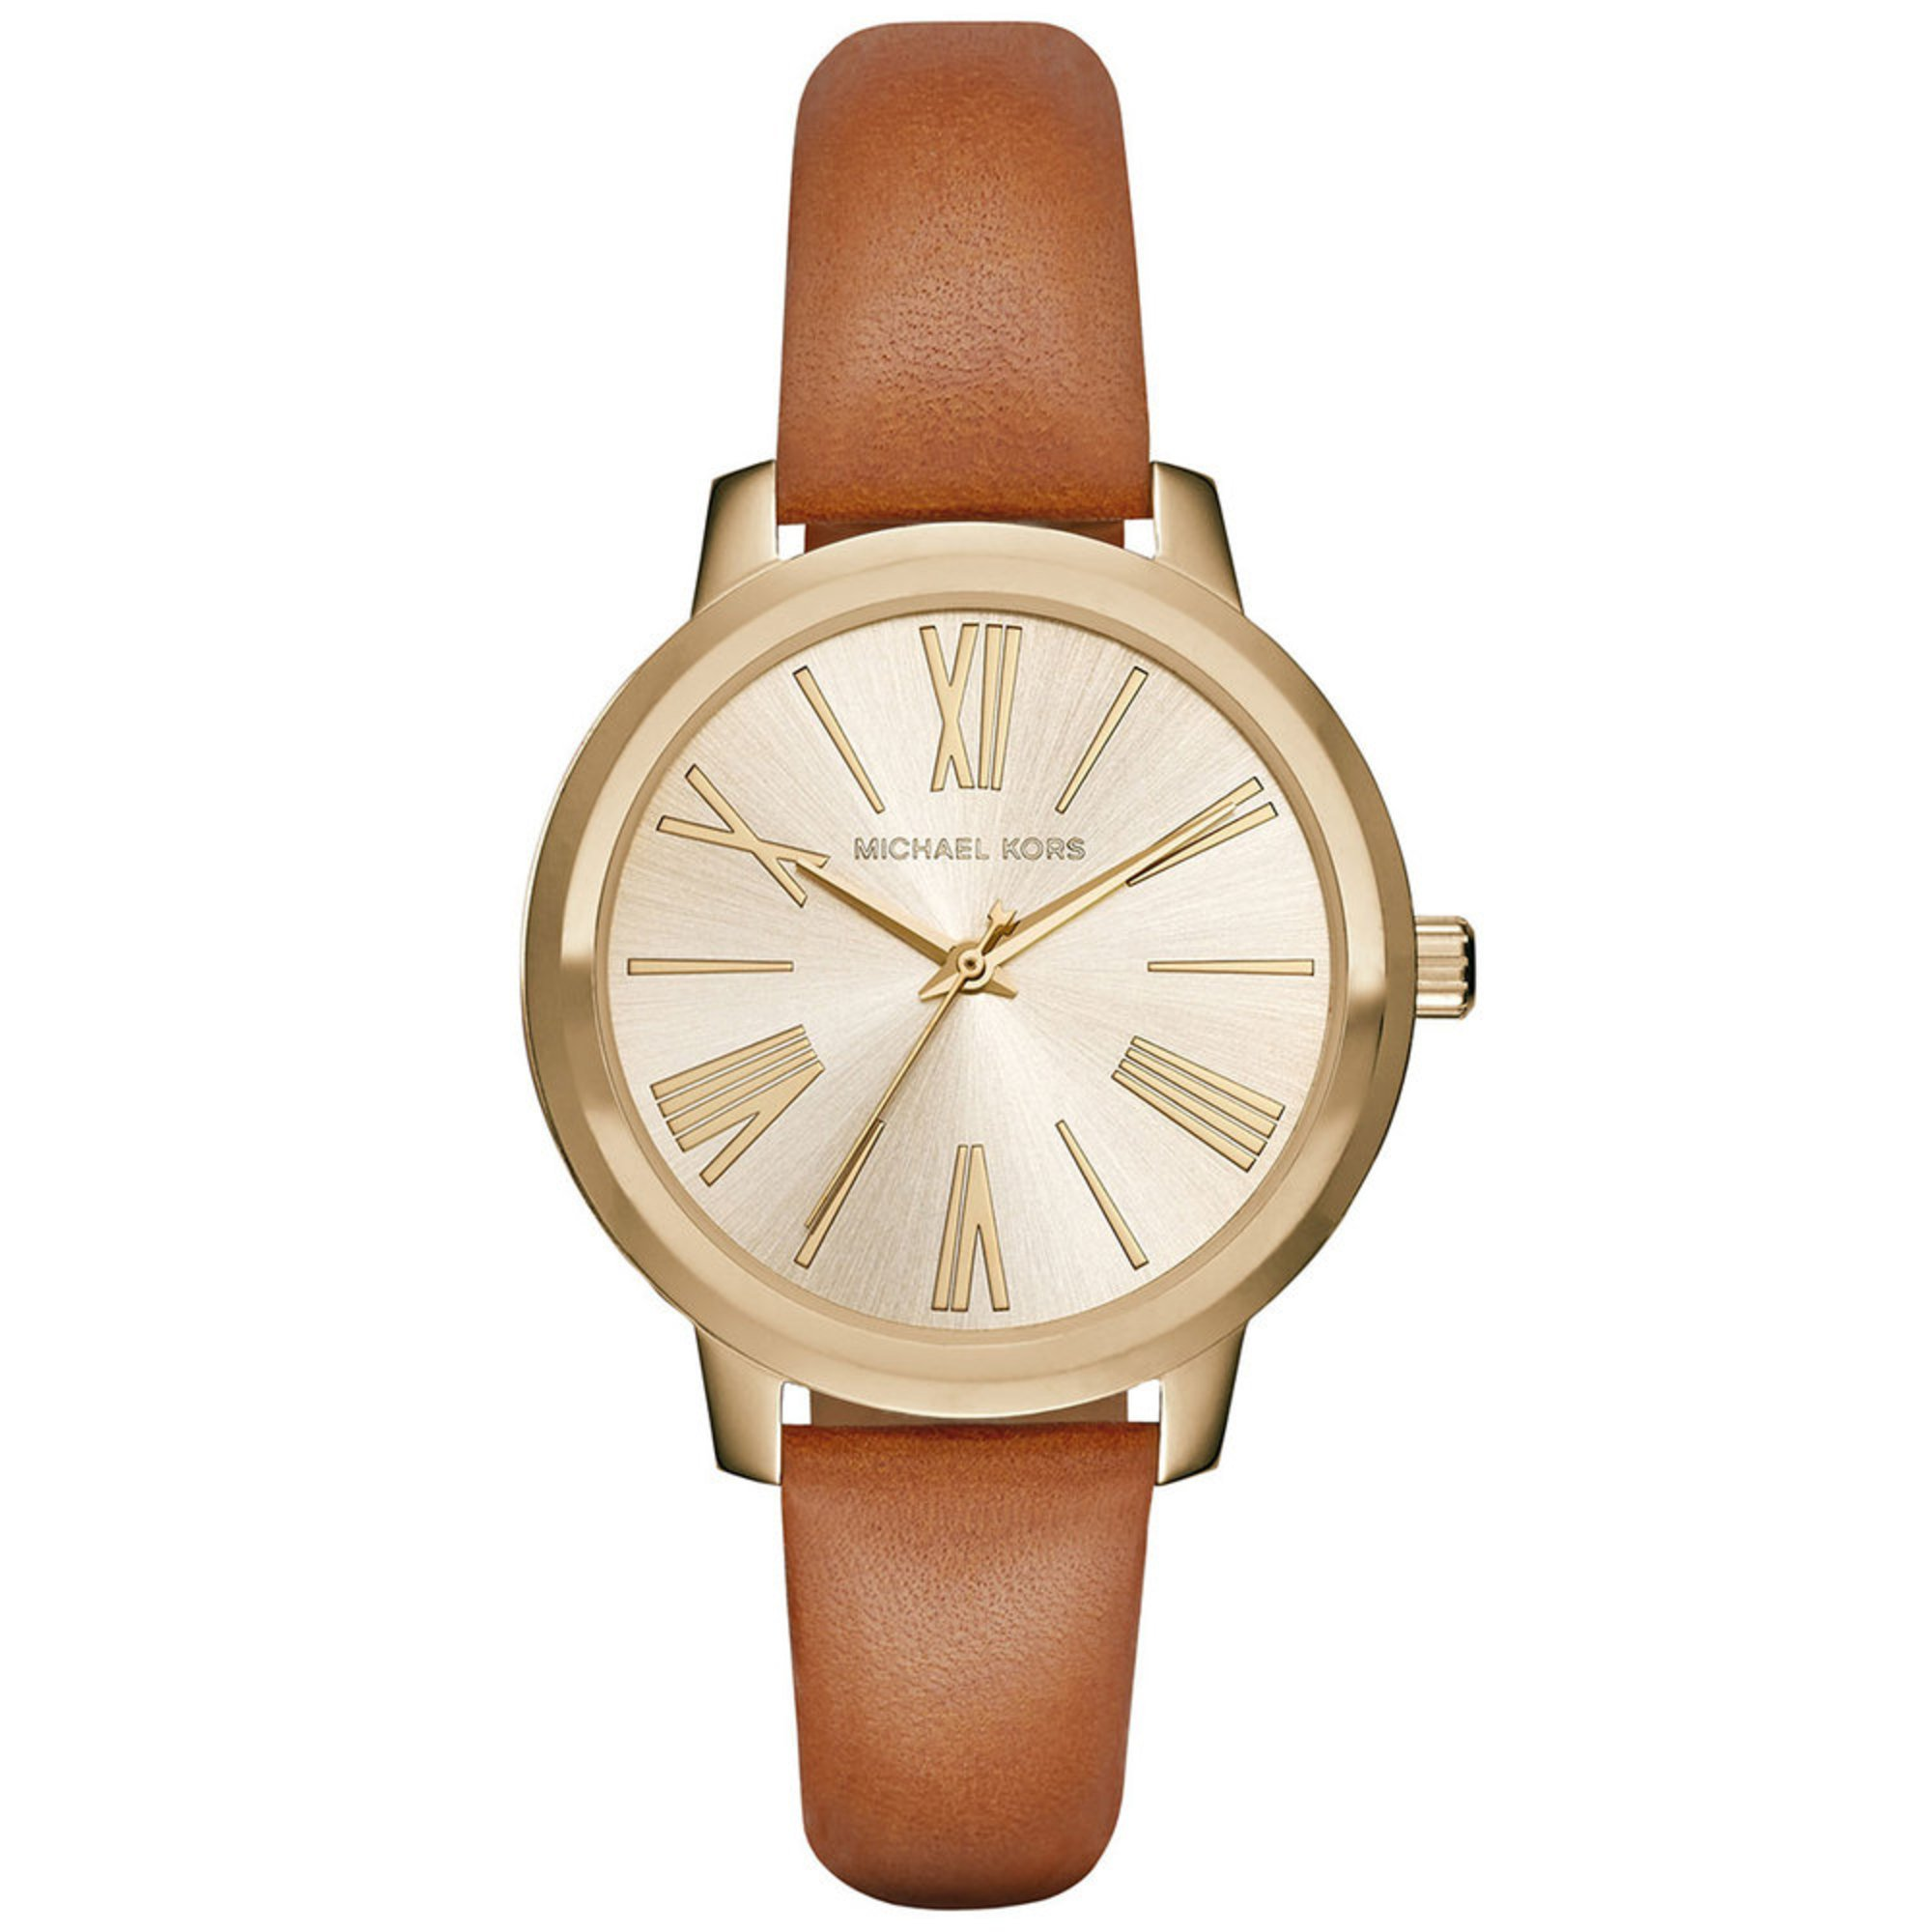 Michael Kors Women's Hartman Watch Mk2521, Brown Leather ...